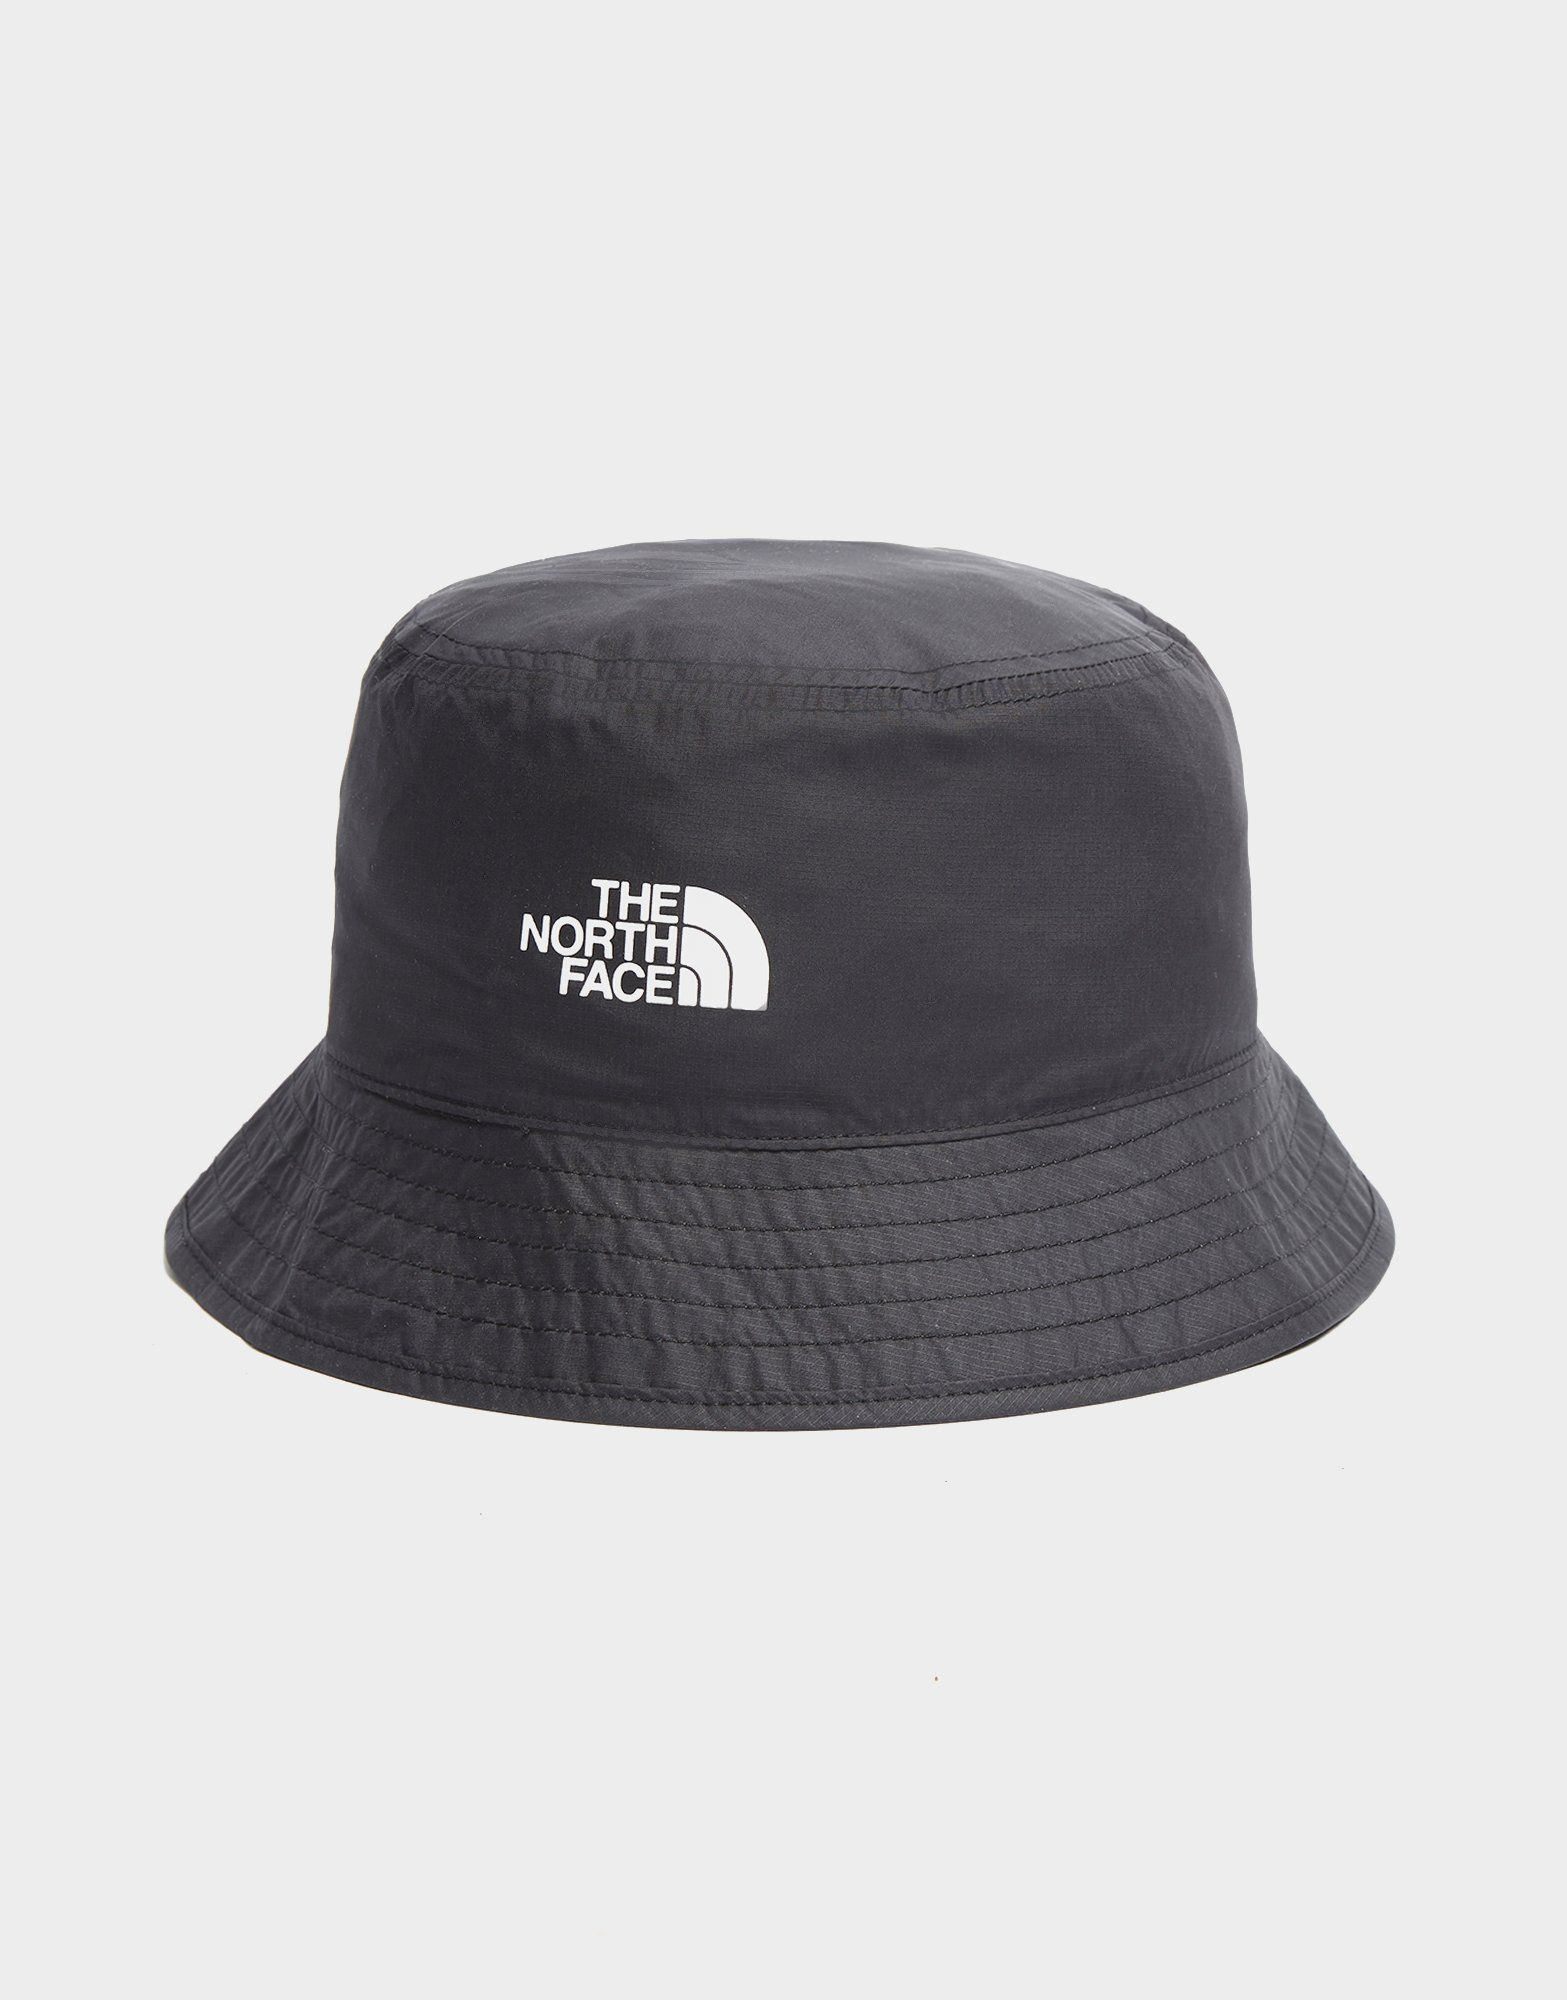 The North Face Sun Stash Bucket Hat  8d4abd5743e